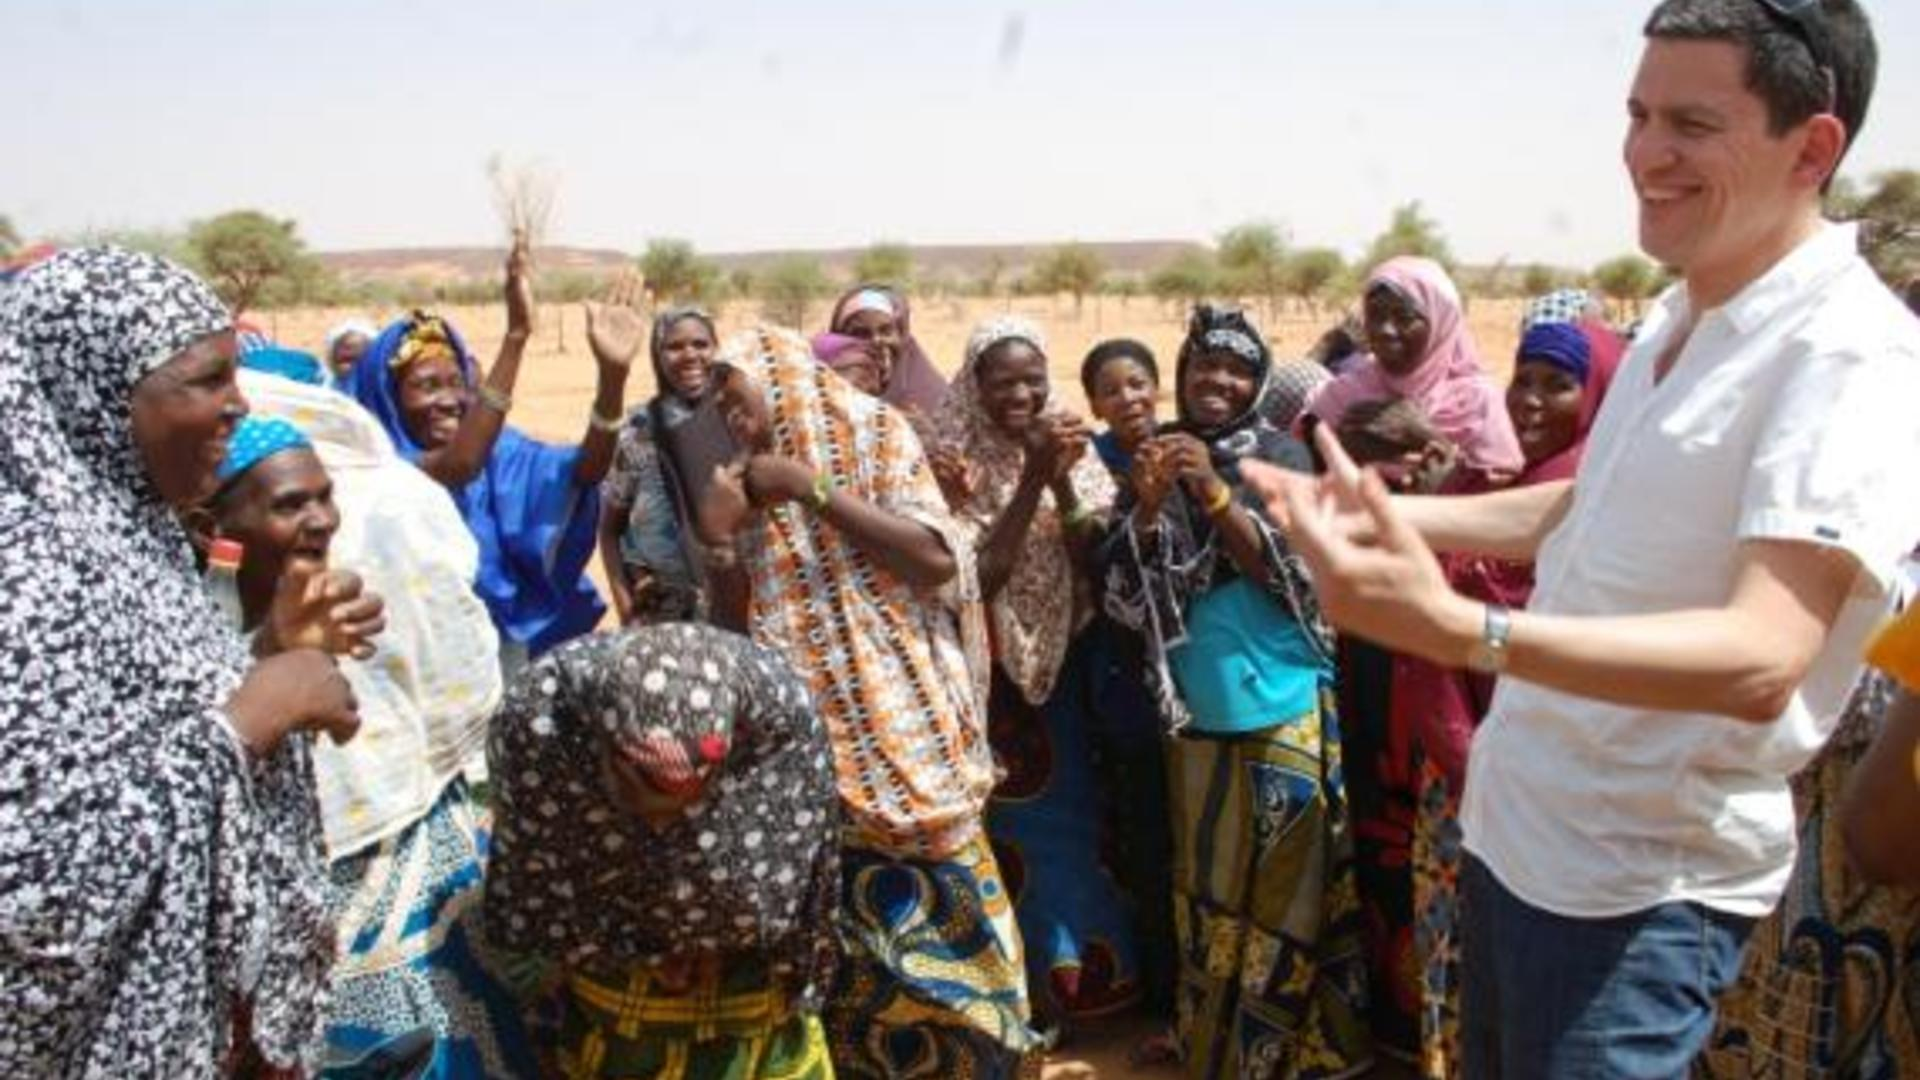 International Rescue Committee president David Miliband visited Nigerian refugees in Niger, where more than 150,000 have found safety after fleeing ongoing violence in their country.